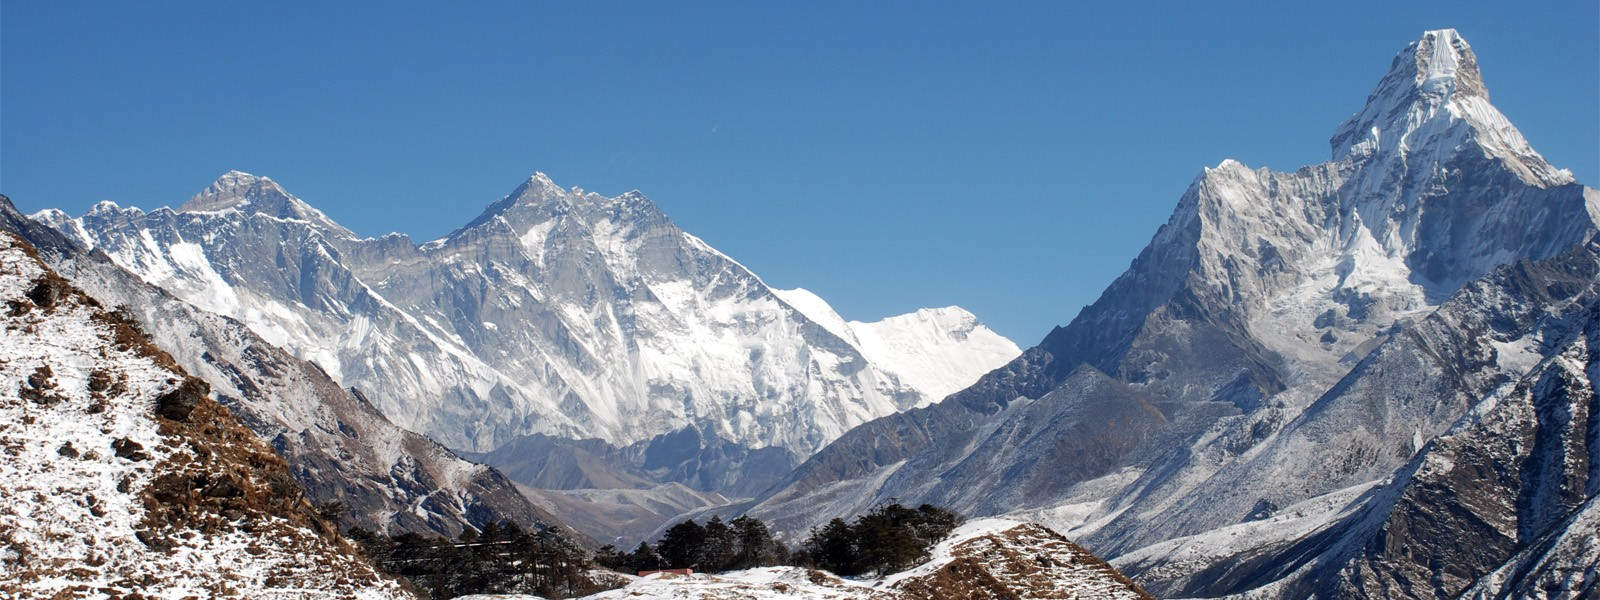 Pokalde Peak in Khumbu Region